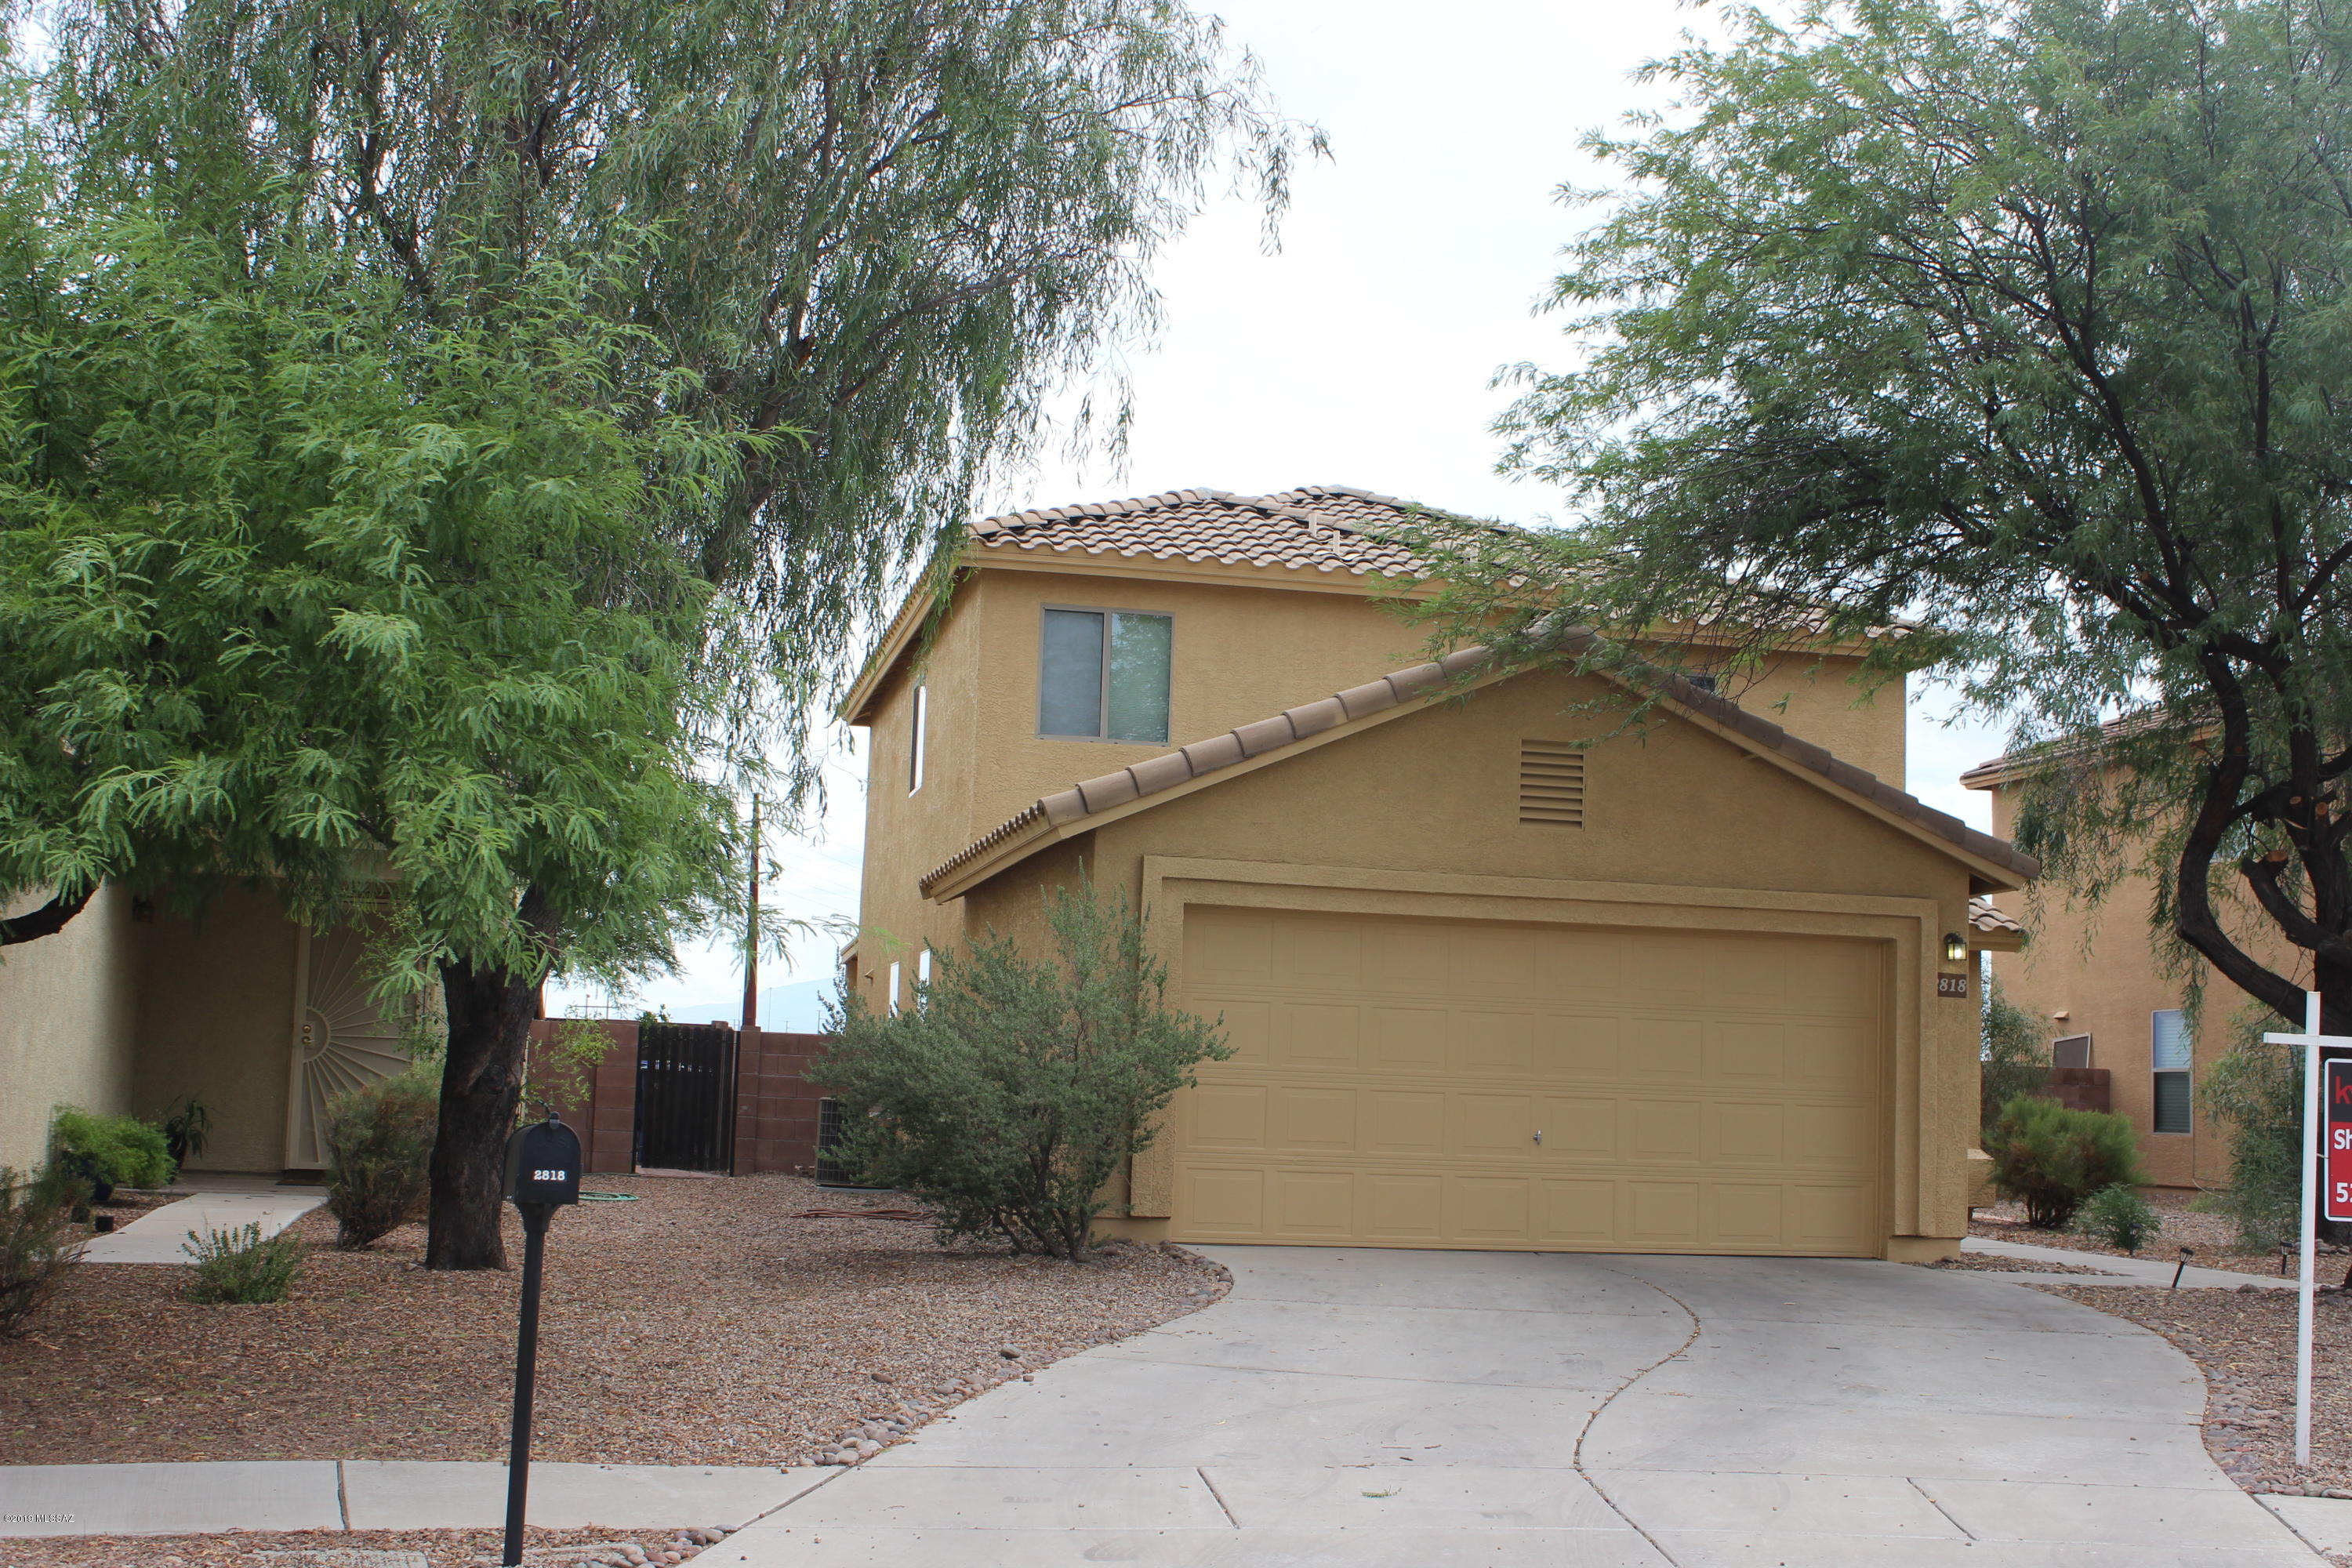 Photo of 2818 N Silver Island Way, Tucson, AZ 85745